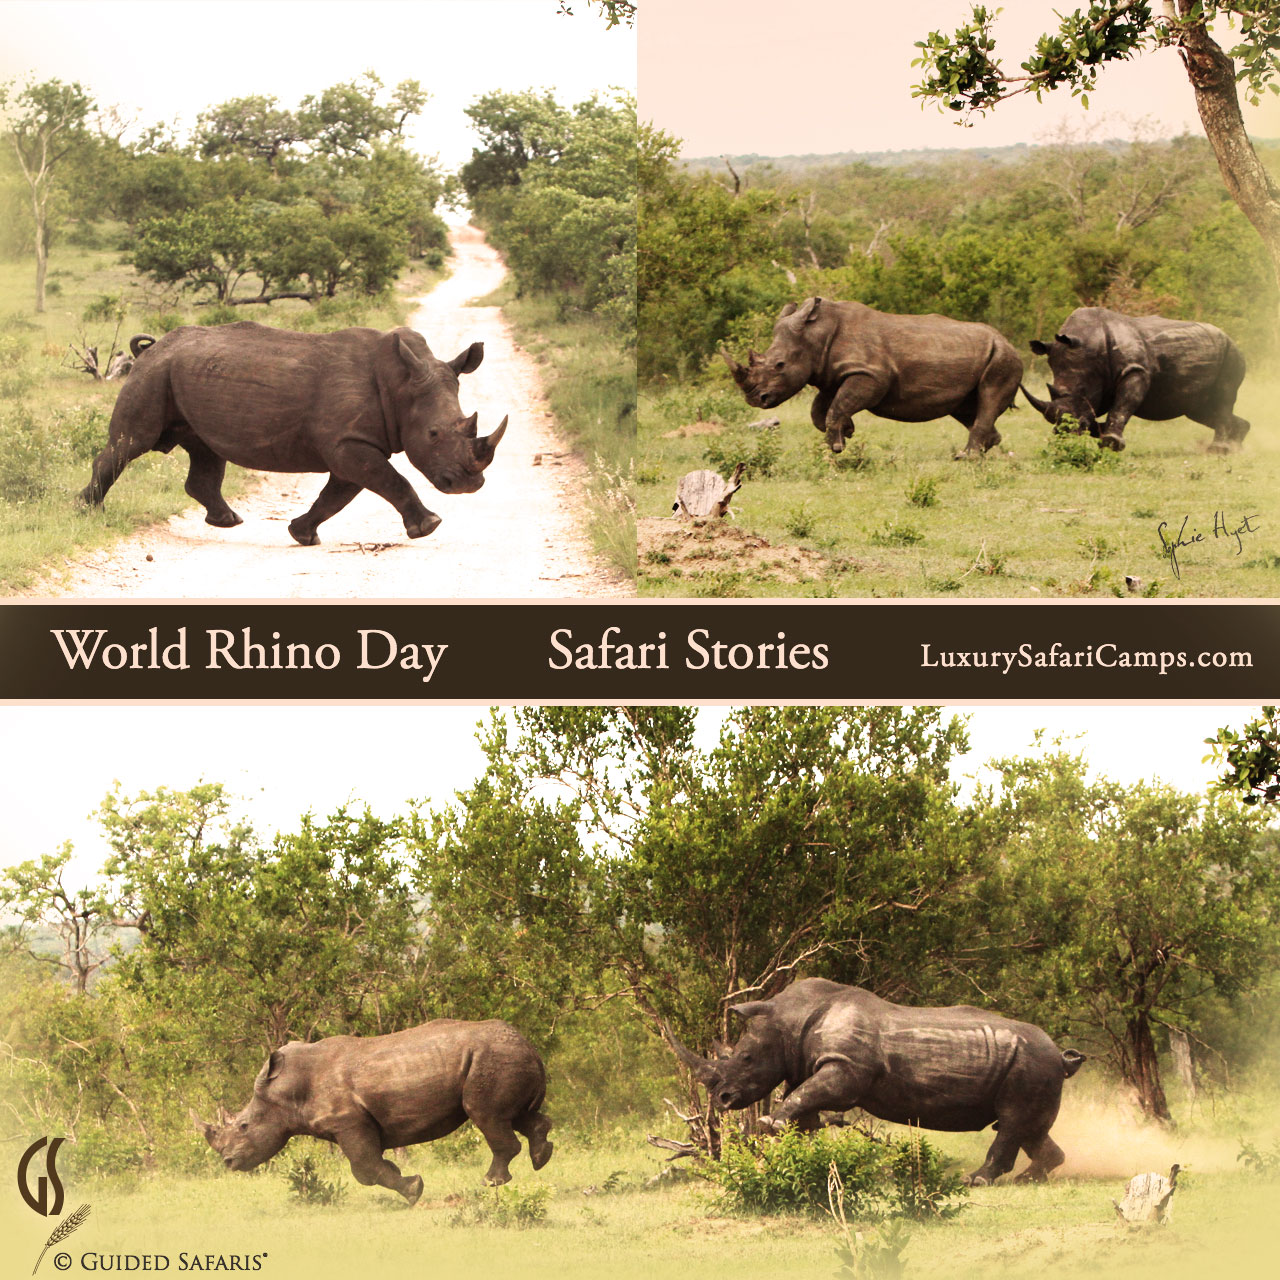 Wordl Rhino Day 2015 © Sophia Hyet for Guided Safaris, LuxurySafariCamps.com